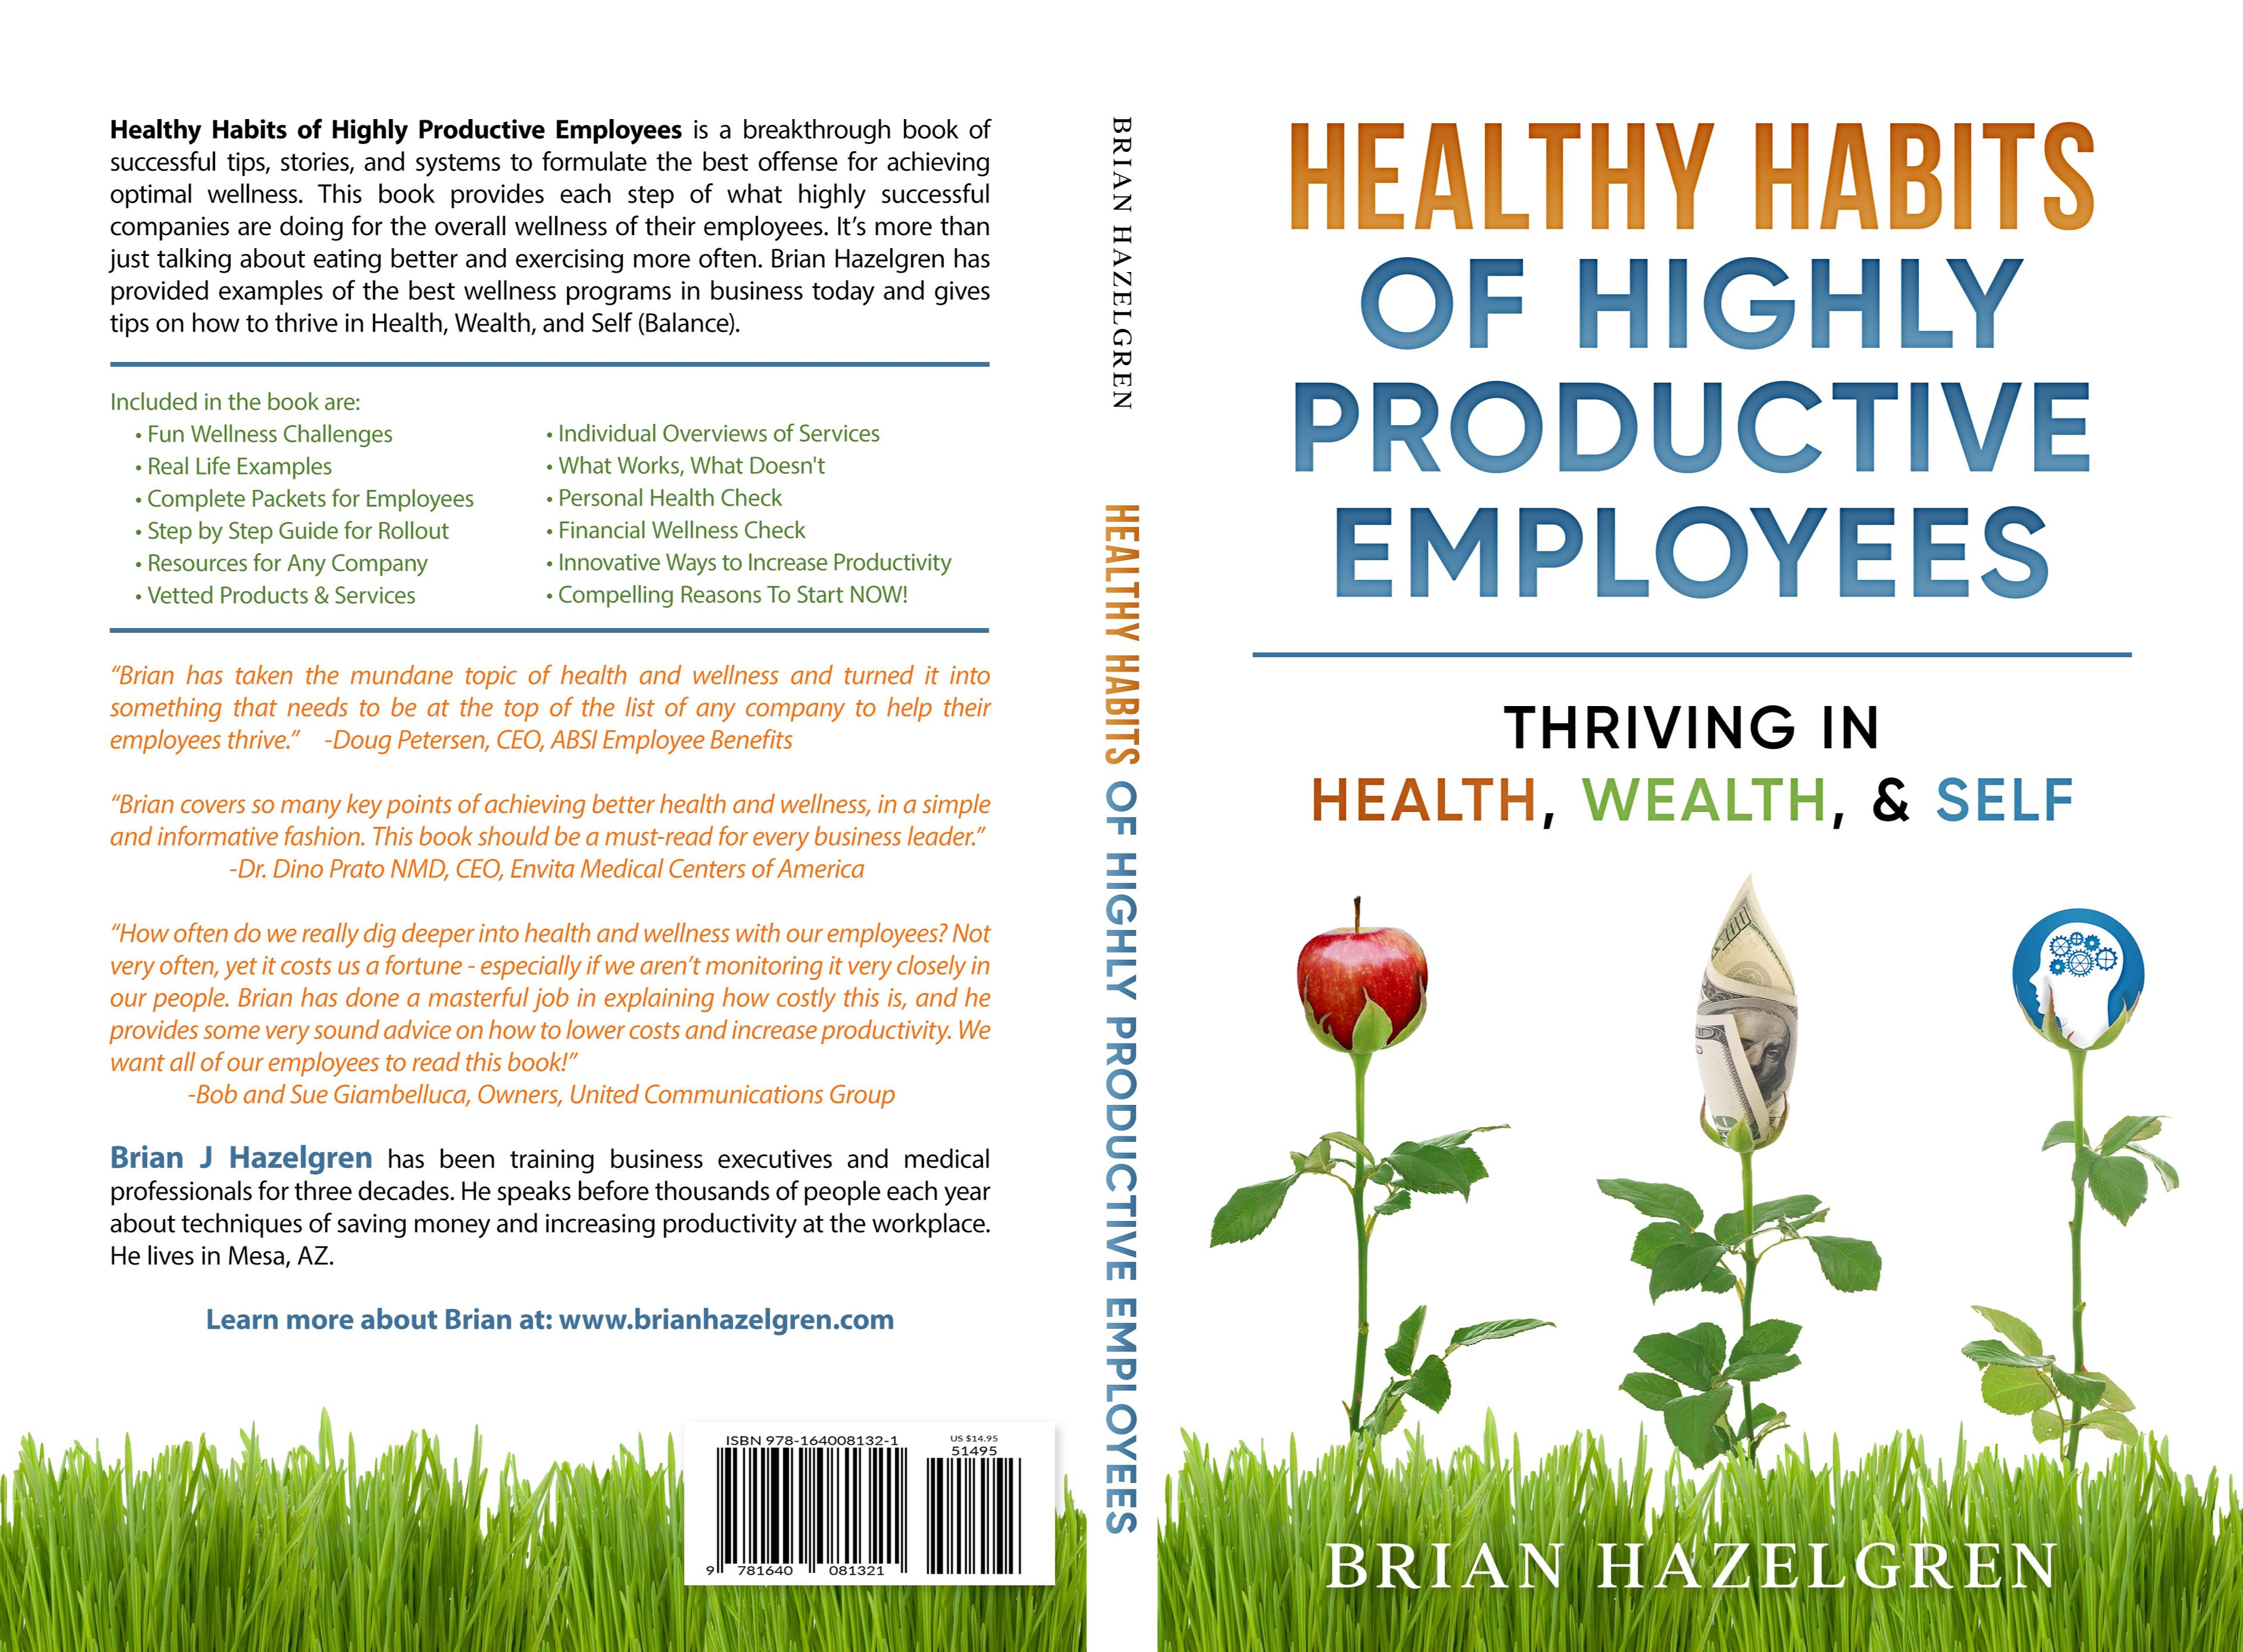 Healthy Habits of Highly Productive Employees cover image